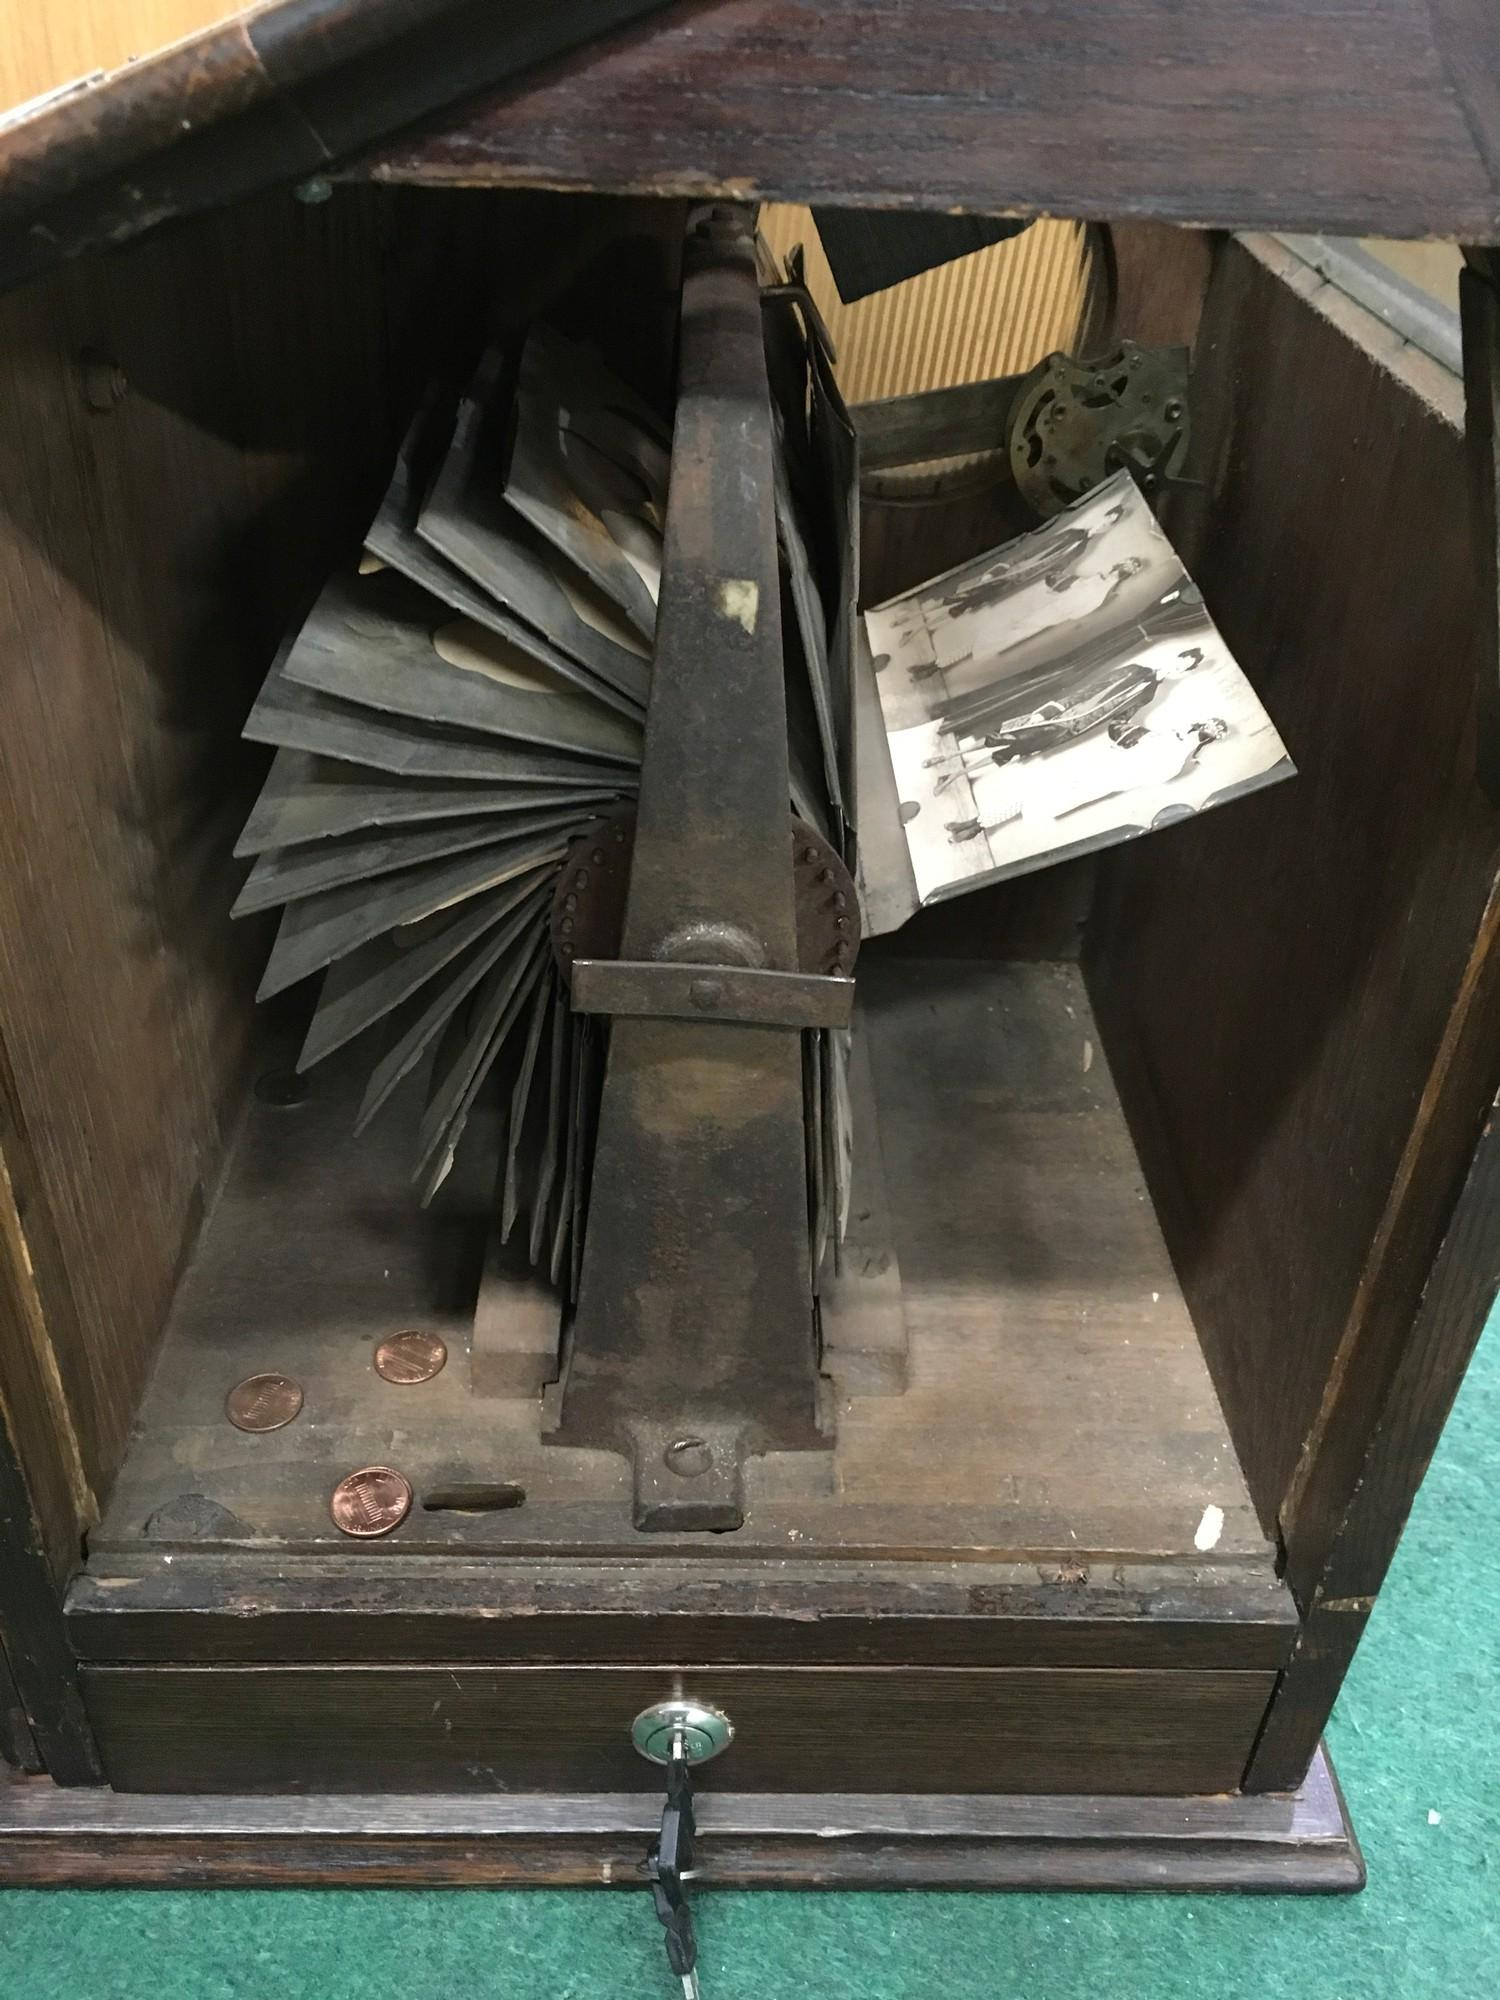 Edwardian counter top Picture Viewer in wood case. Coin operated. Works on old 6d coin or 1 cent. - Image 4 of 4